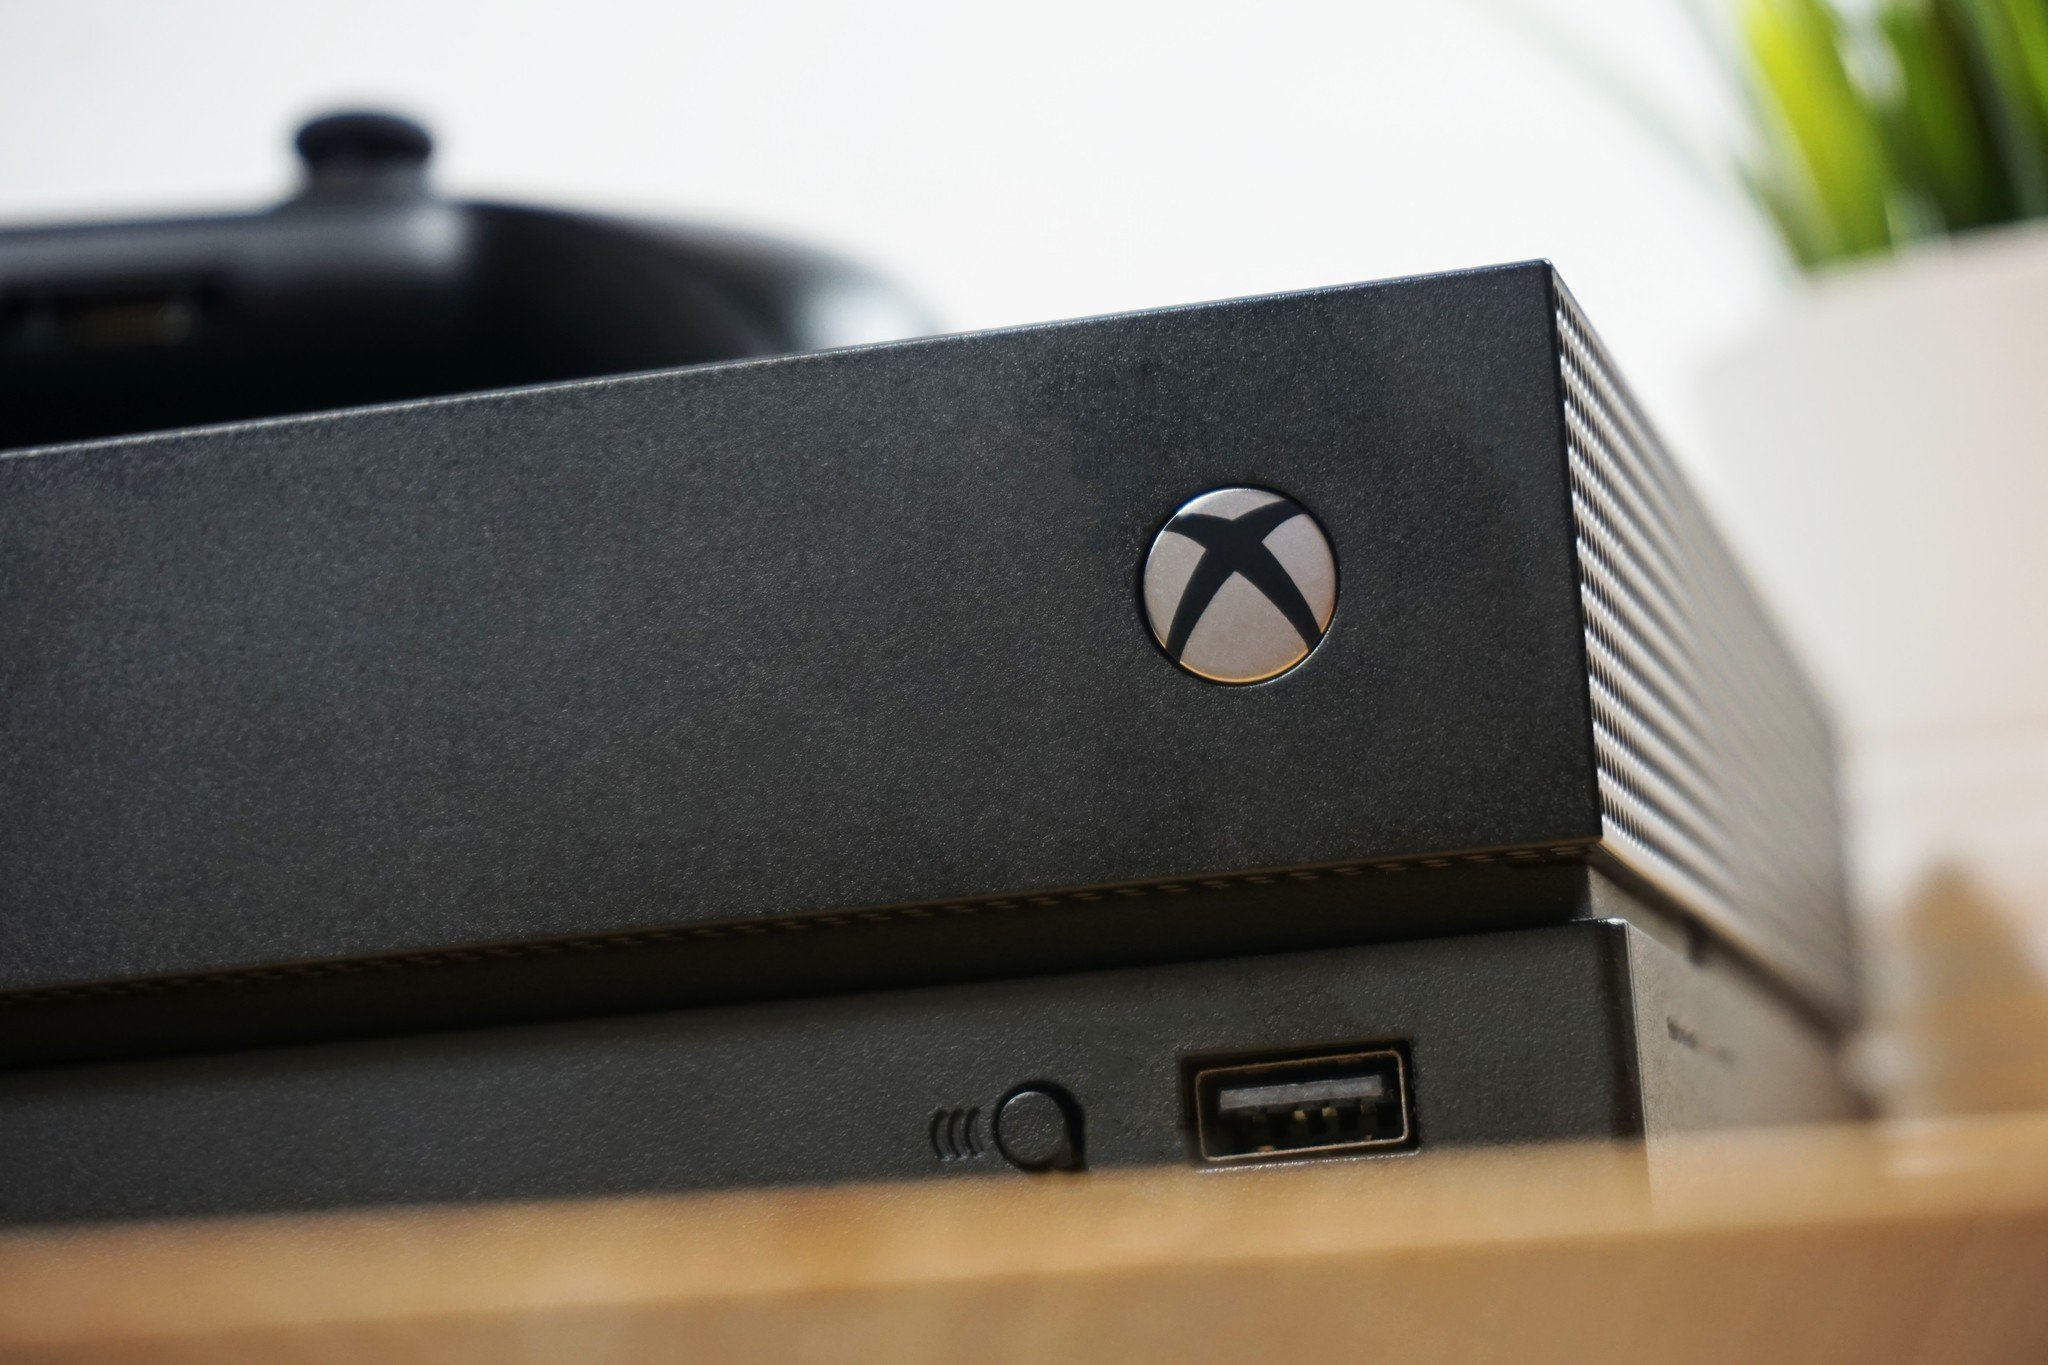 small resolution of the xbox one cuts out the complexities of gaming with a seamless setup and gaming experience unbox it plug it in walk through a few steps of set up